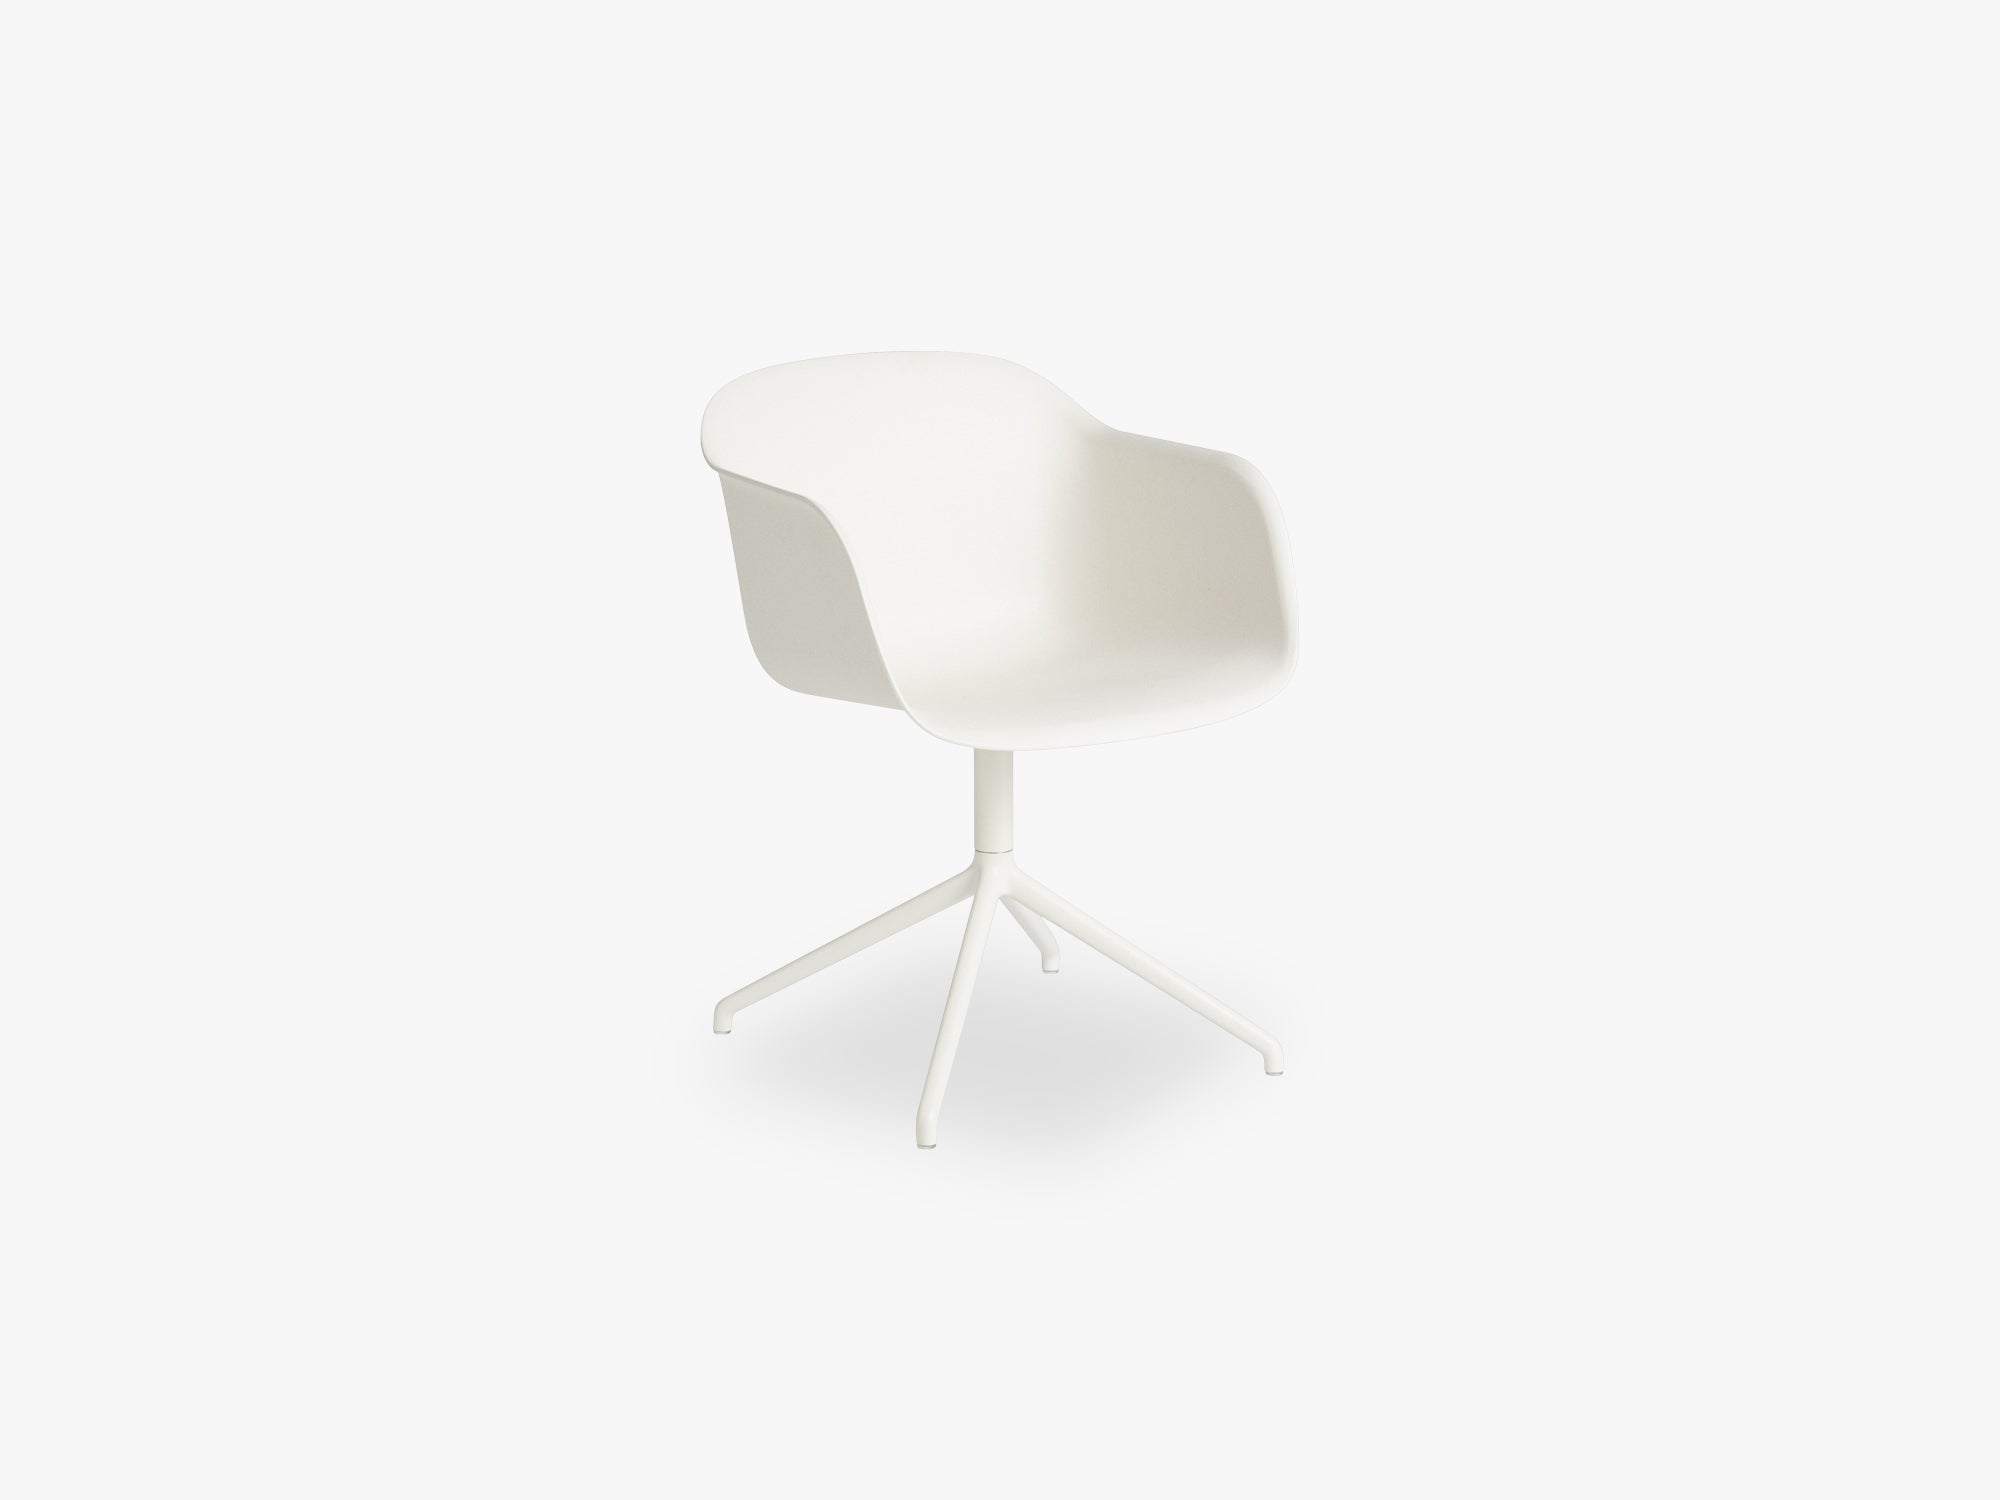 Fiber Armchair - Swivel Base WO Return - Normal Shell, Natural White/White fra Muuto